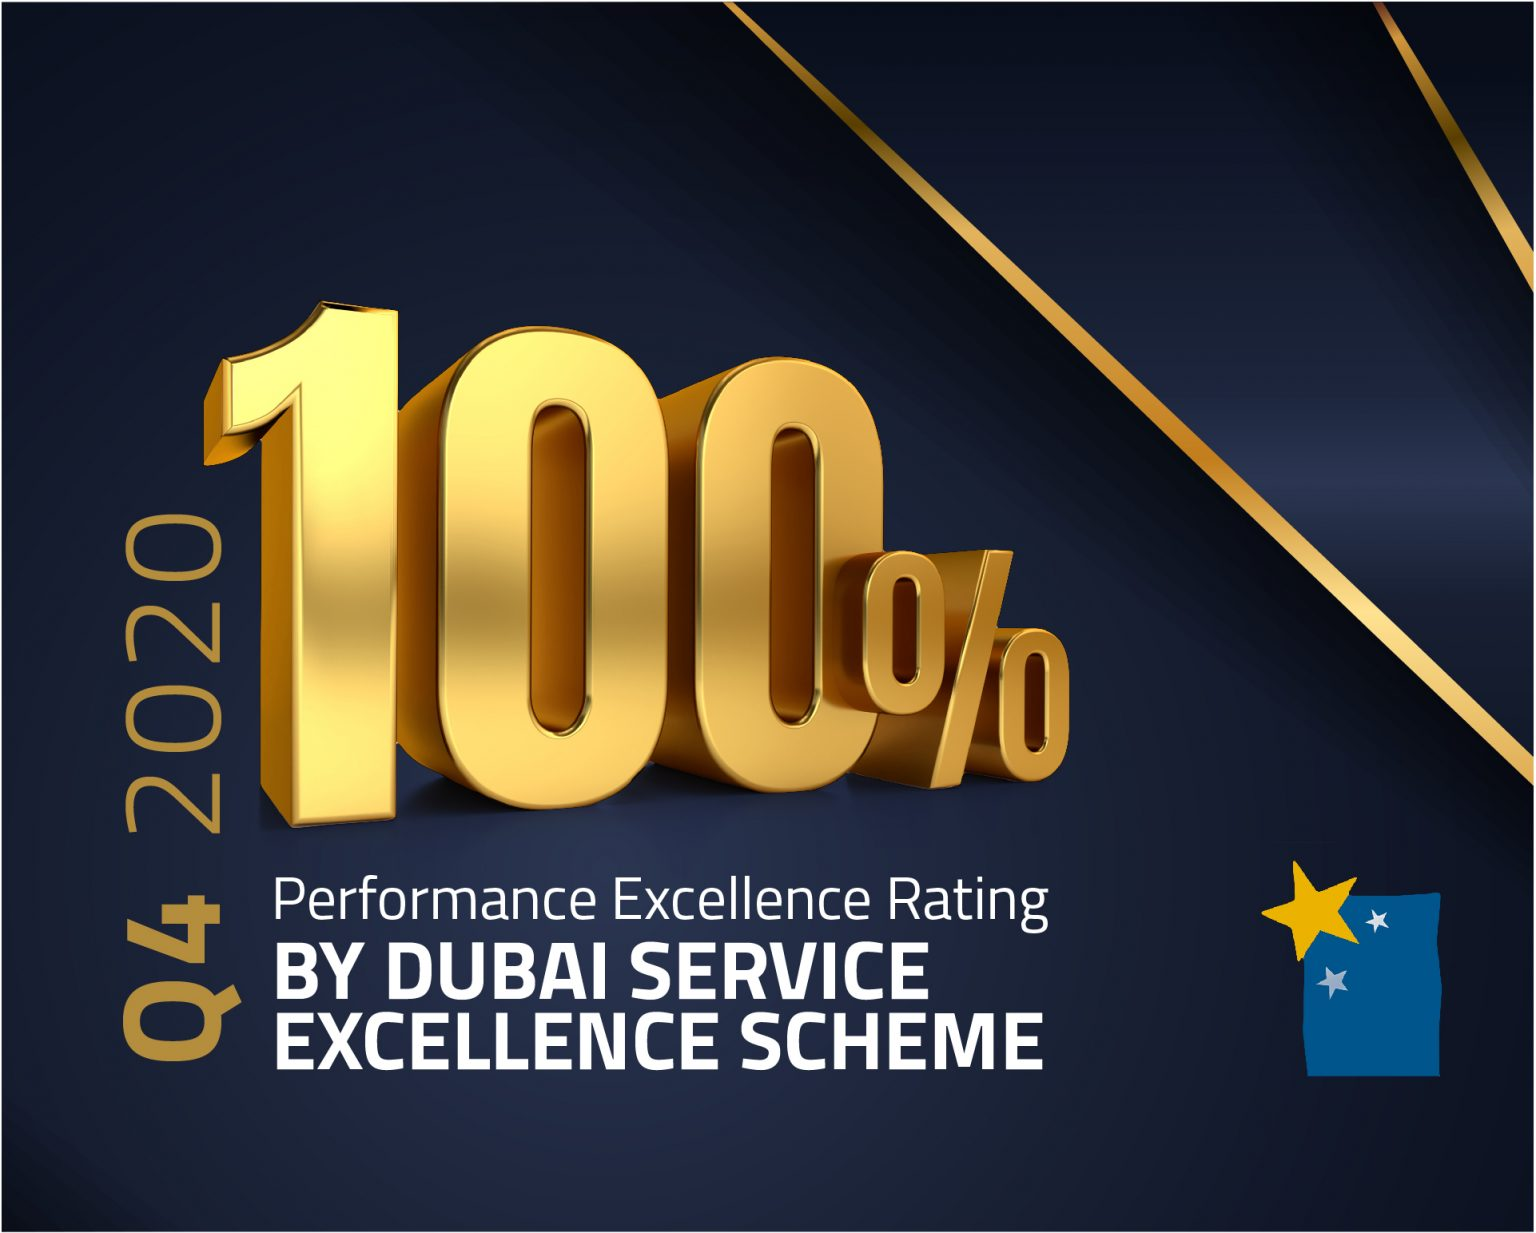 Finance House Securities Receives a Performance Excellence Rating of 100% for Q4 2020